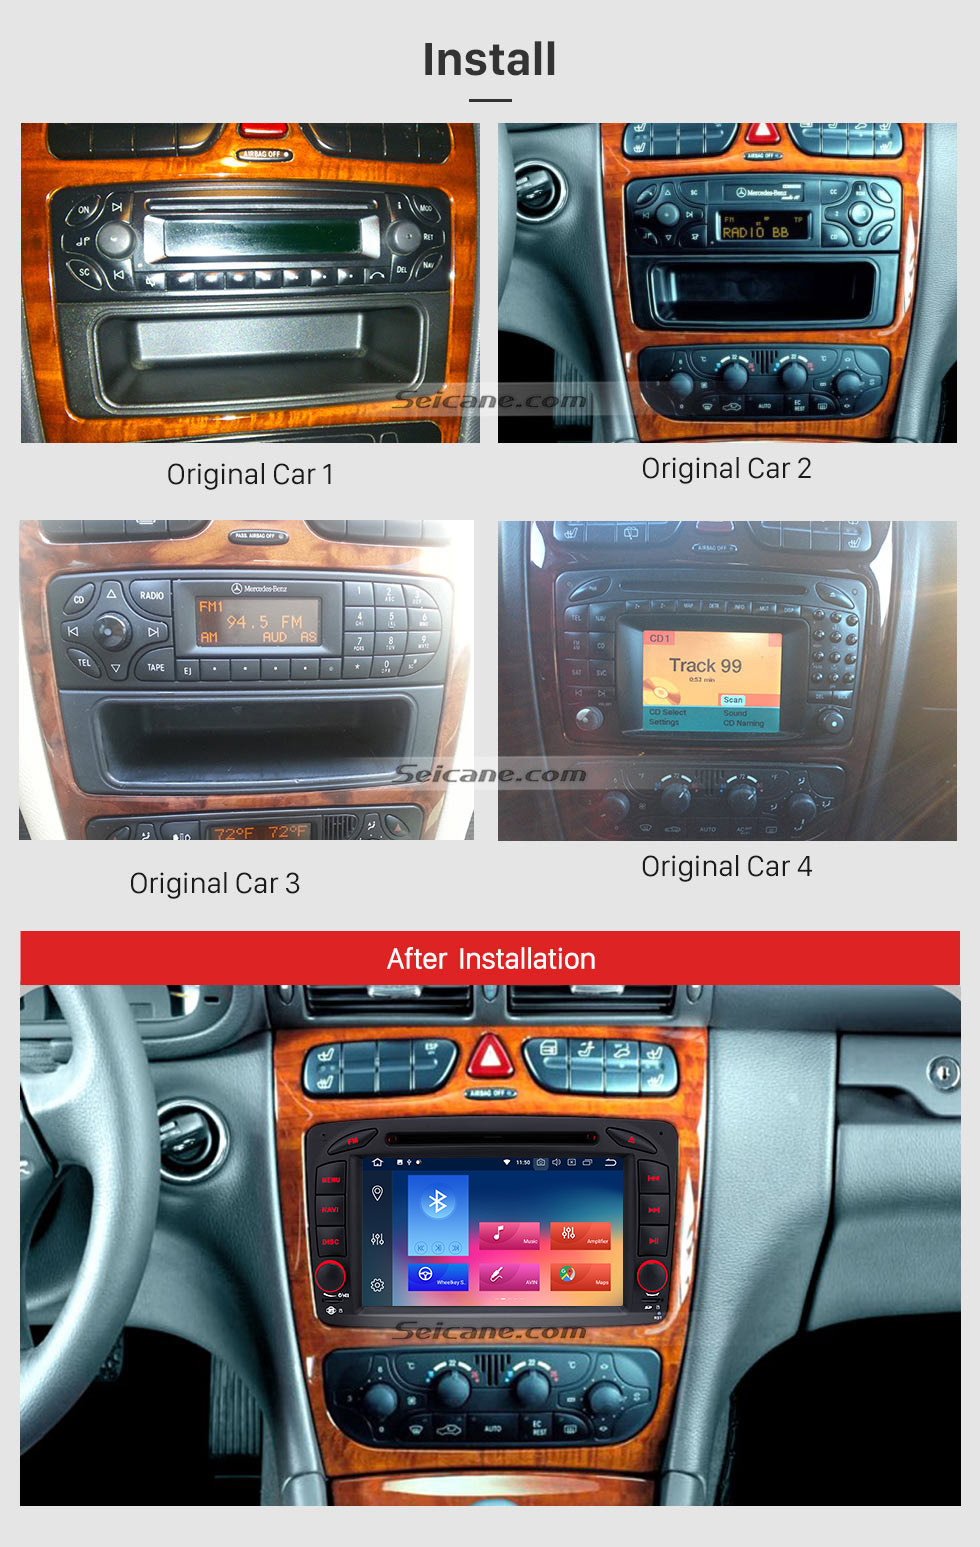 Seicane OEM Android 9.0 Car Stereo DVD GPS System for 1998-2002 Mercedes Benz A Class W168 A140 A160 A170 A190 with 3G WiFi Radio RDS Bluetooth Mirror Link OBD2 Rearview Camera